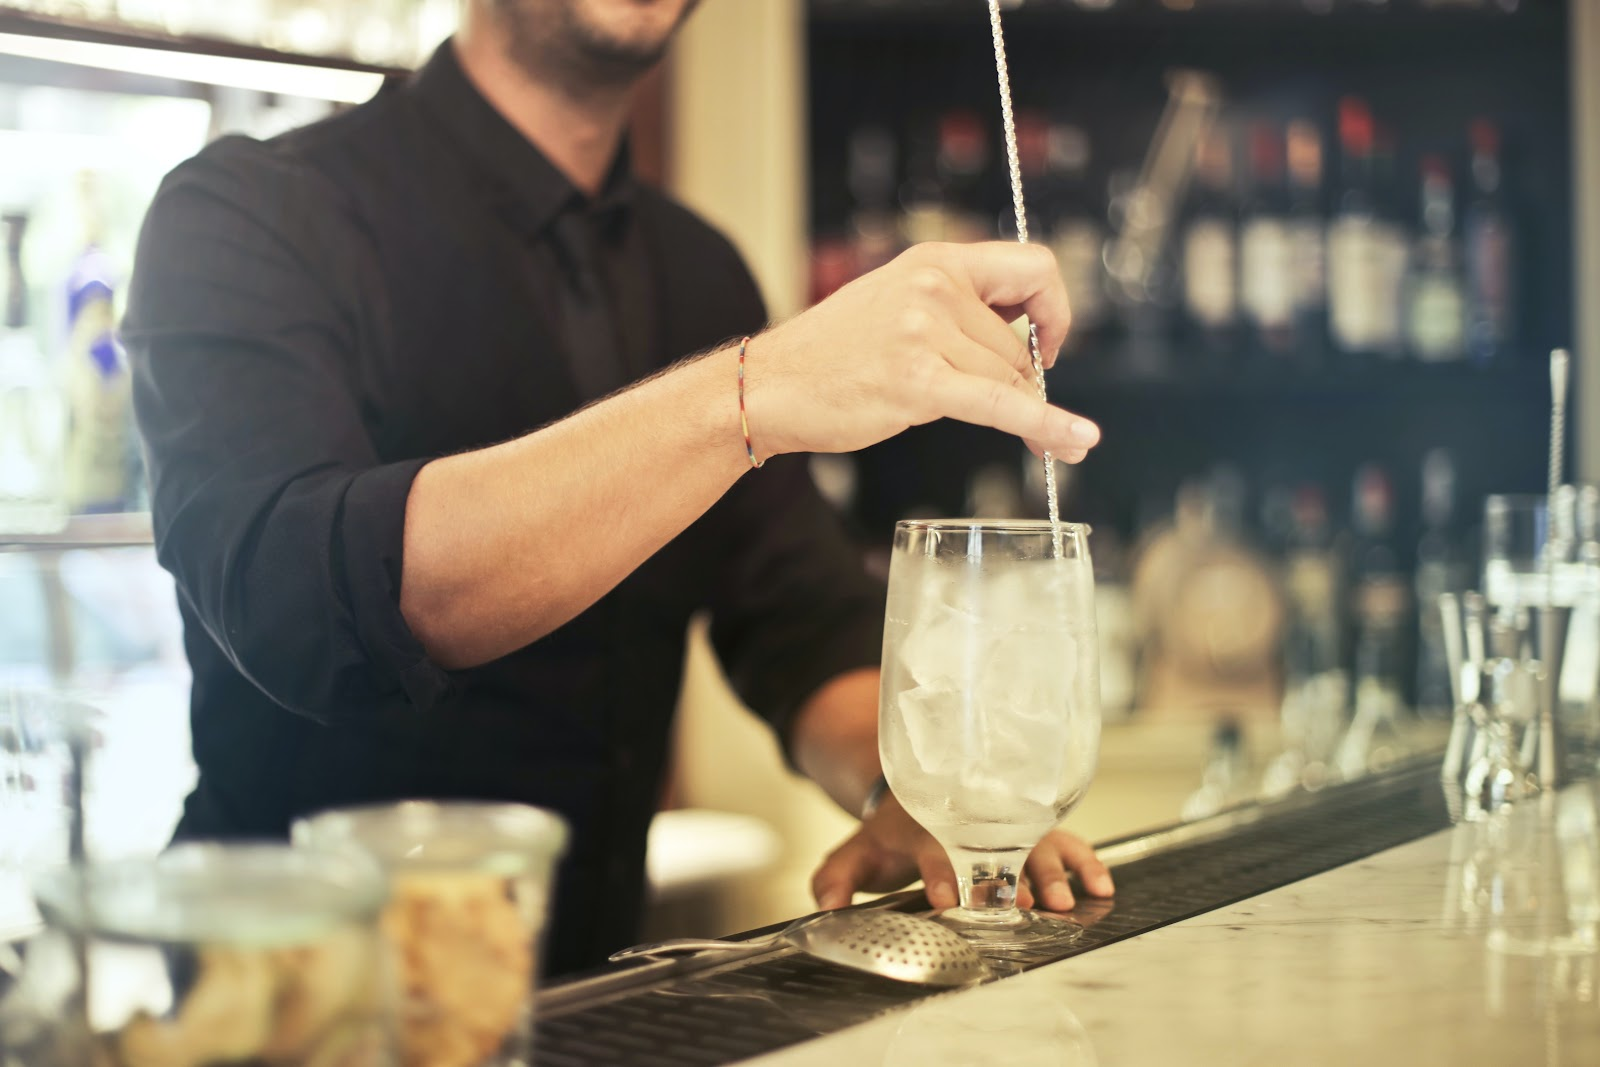 man-in-black-polo-shirt-holding-clear-drinking-glass-benefits wearing uniforms